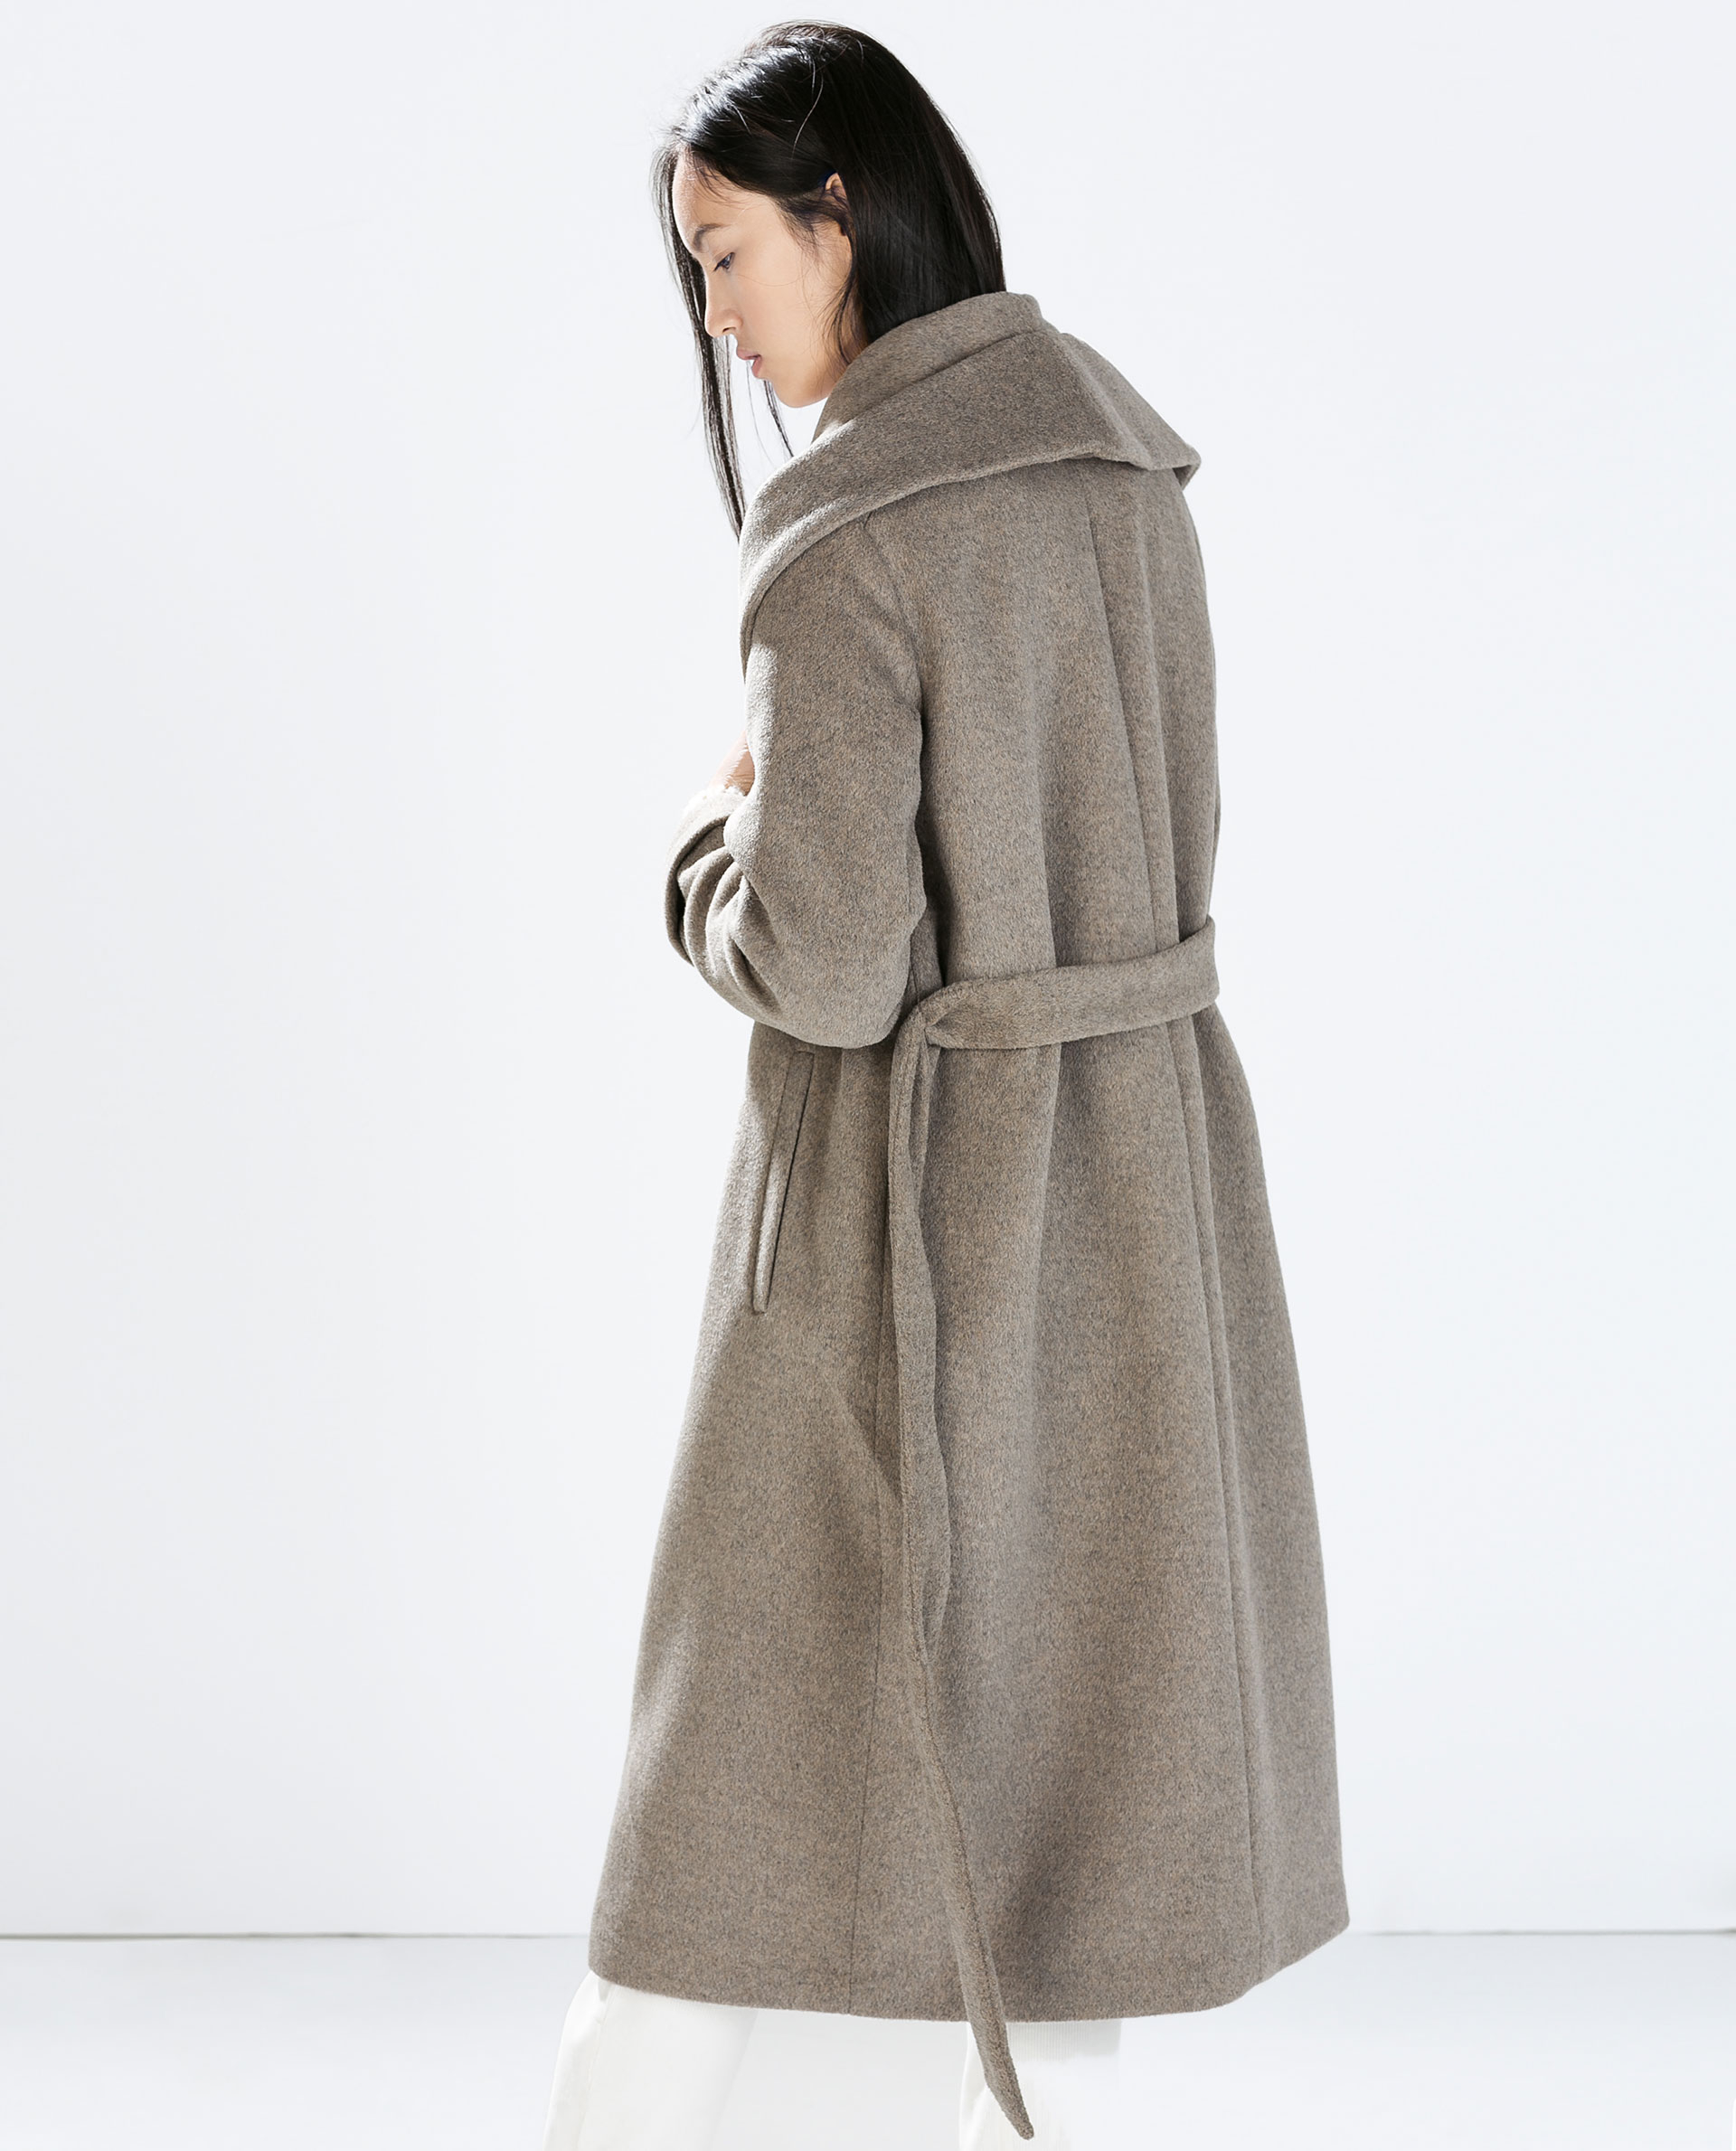 Zara Wool Coat With Belt in Brown | Lyst